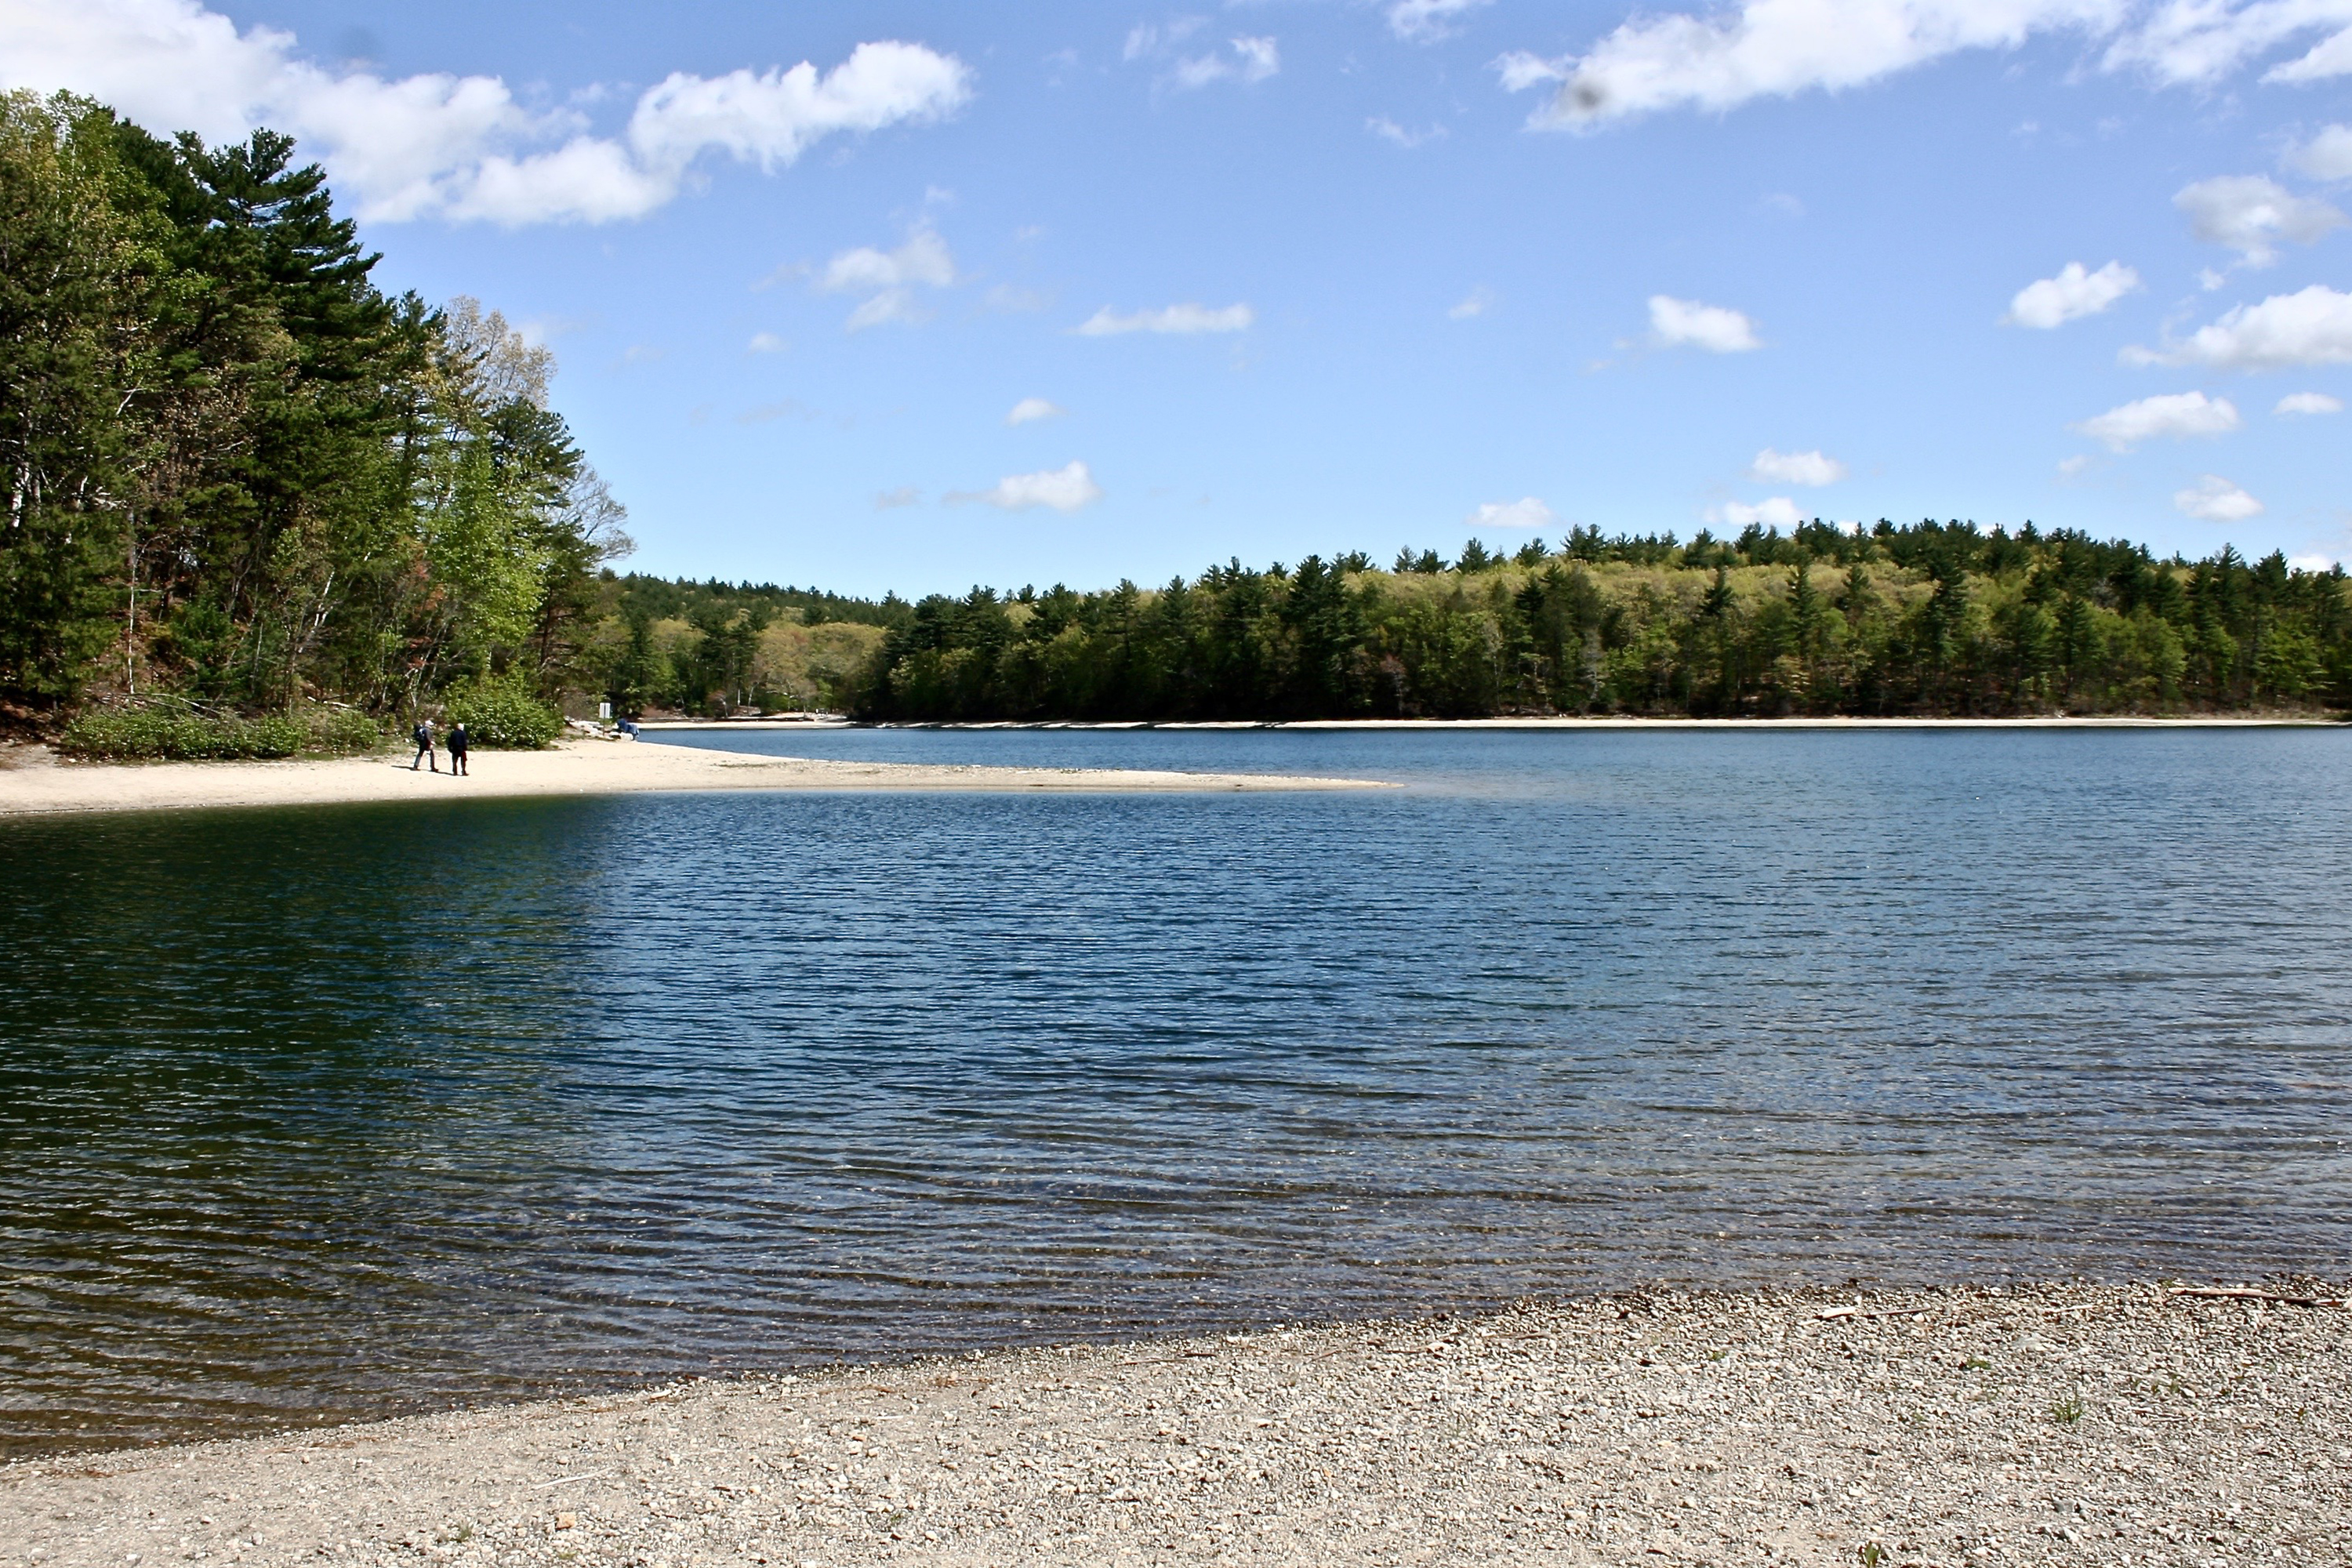 a life in walden pond In the mid-19th century, american writer henry david thoreau retreated to walden pond to connect with nature and write about the meaning of life for his celebrated book, walden: or life in the woods.